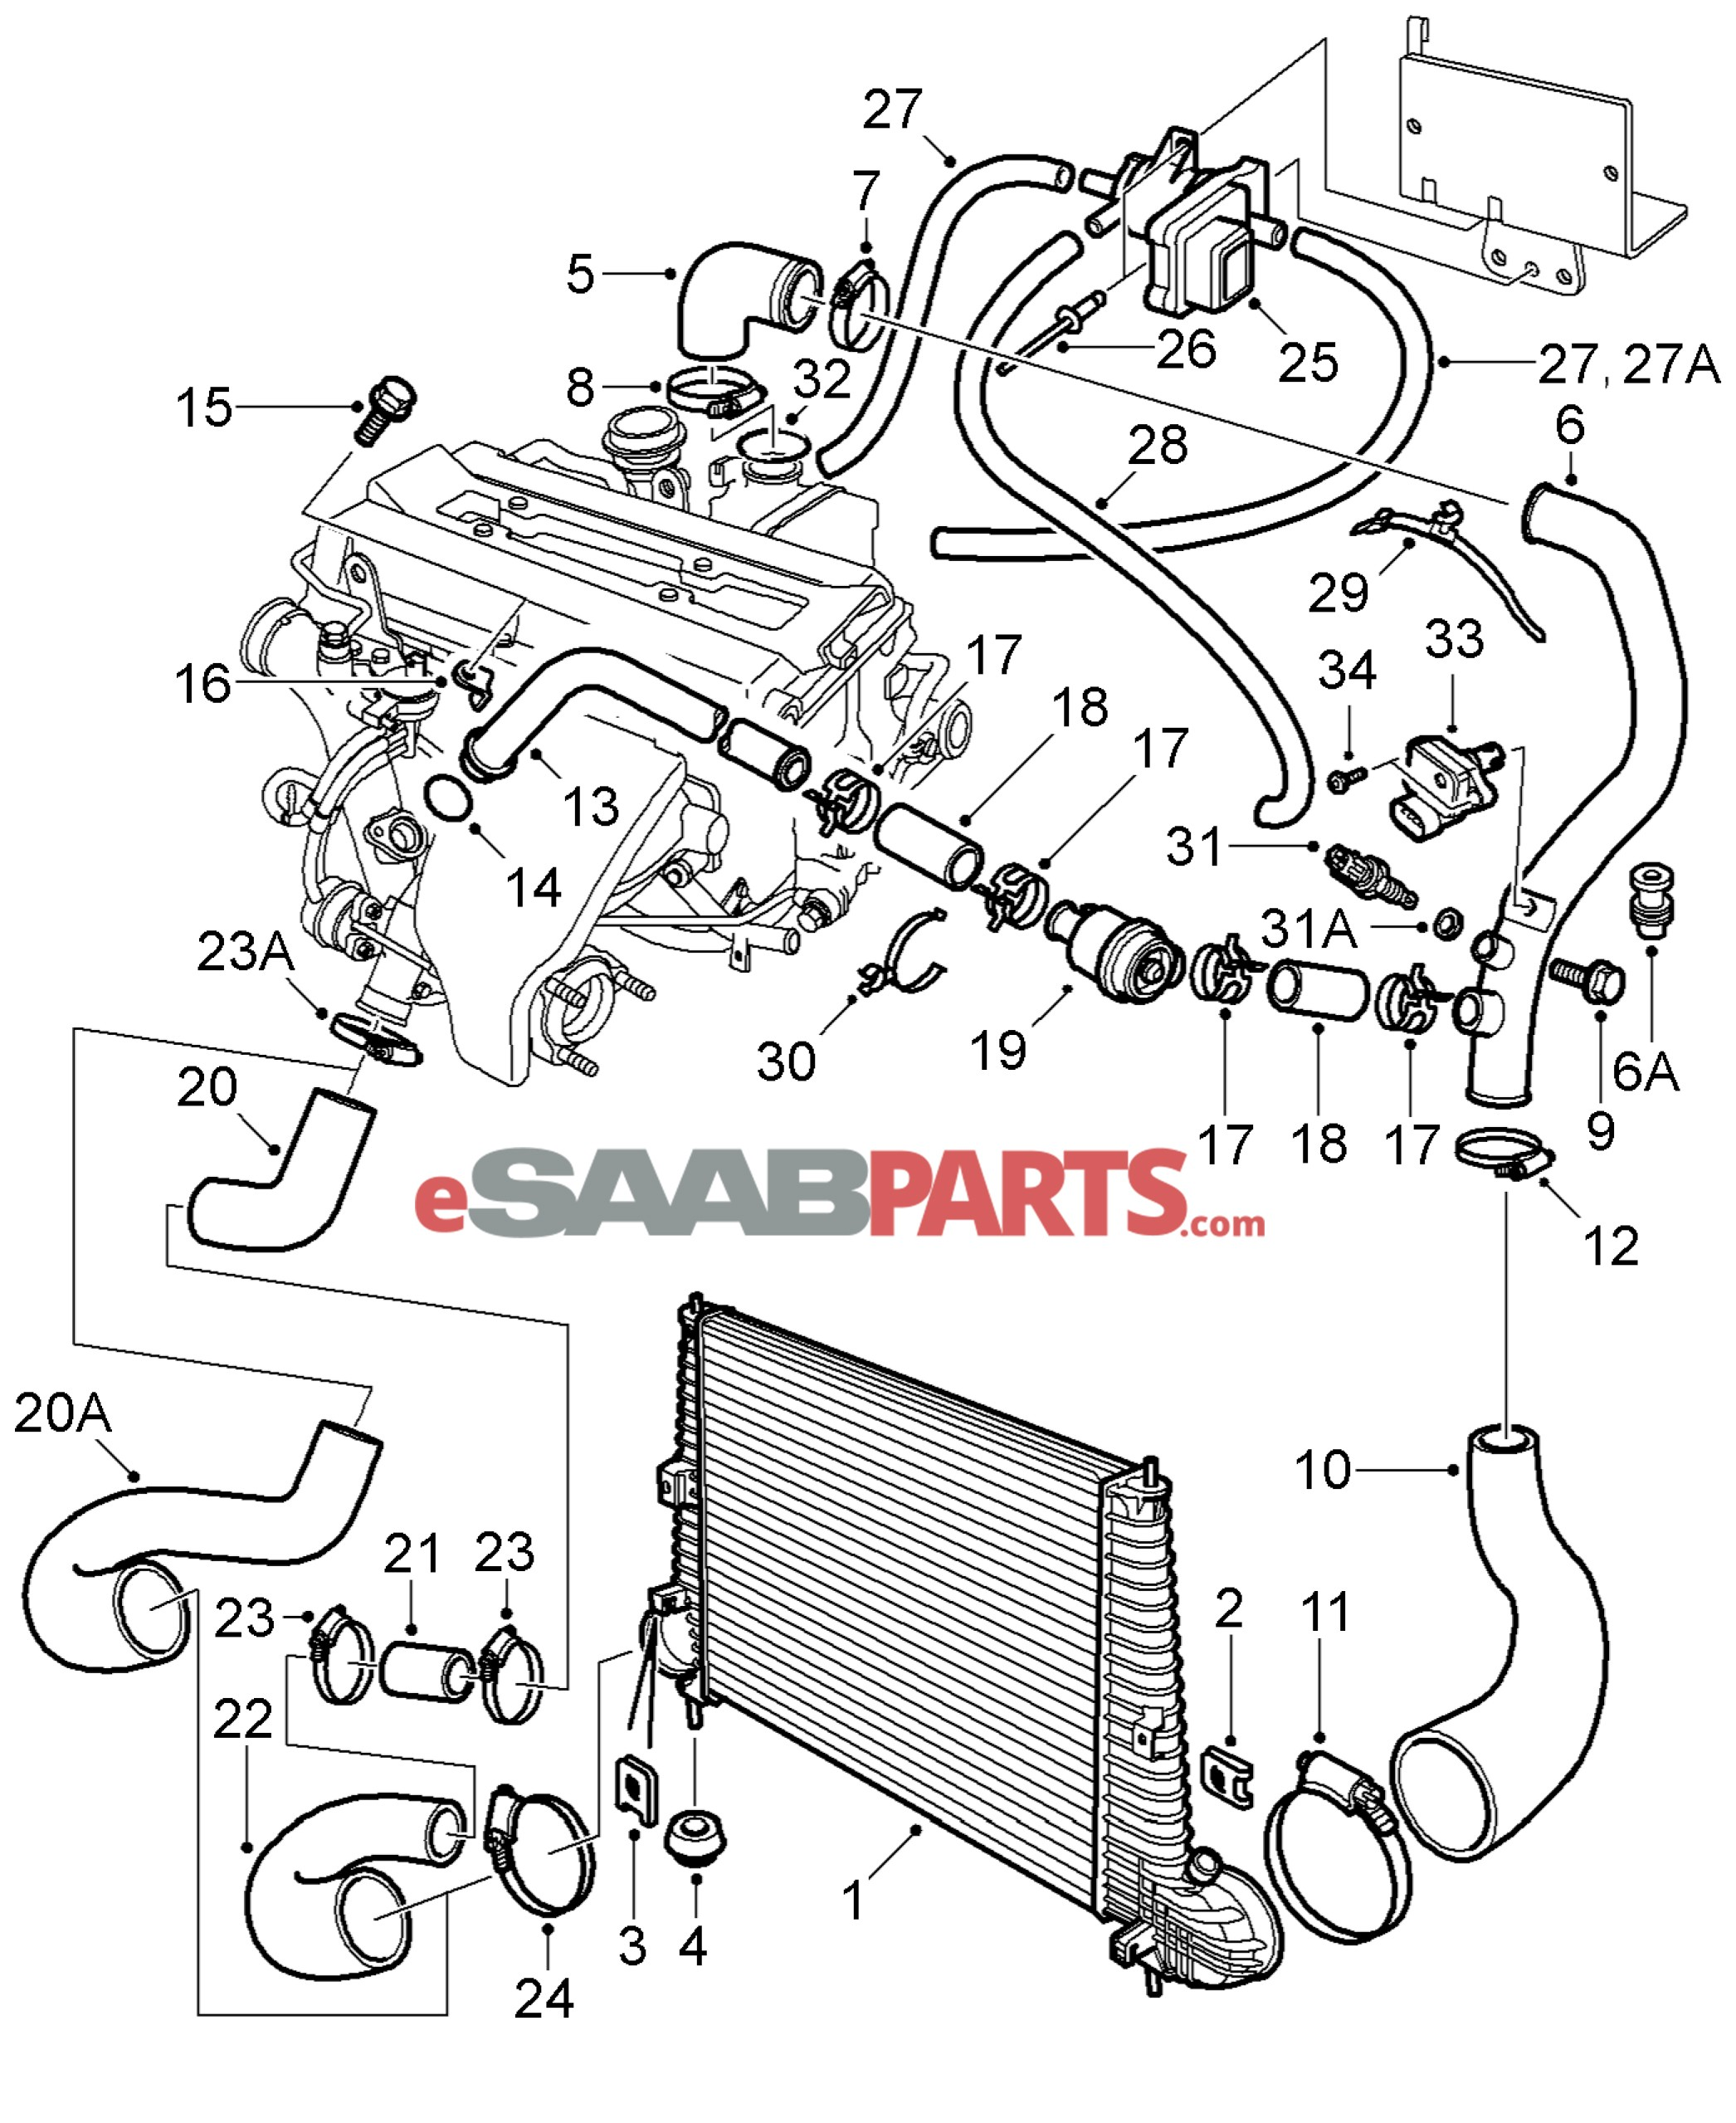 Land Rover Discovery 3 9 Wiring Diagram Schematics Diagrams Engine Vaccum Radio U2022 Rh Augmently Co 2004